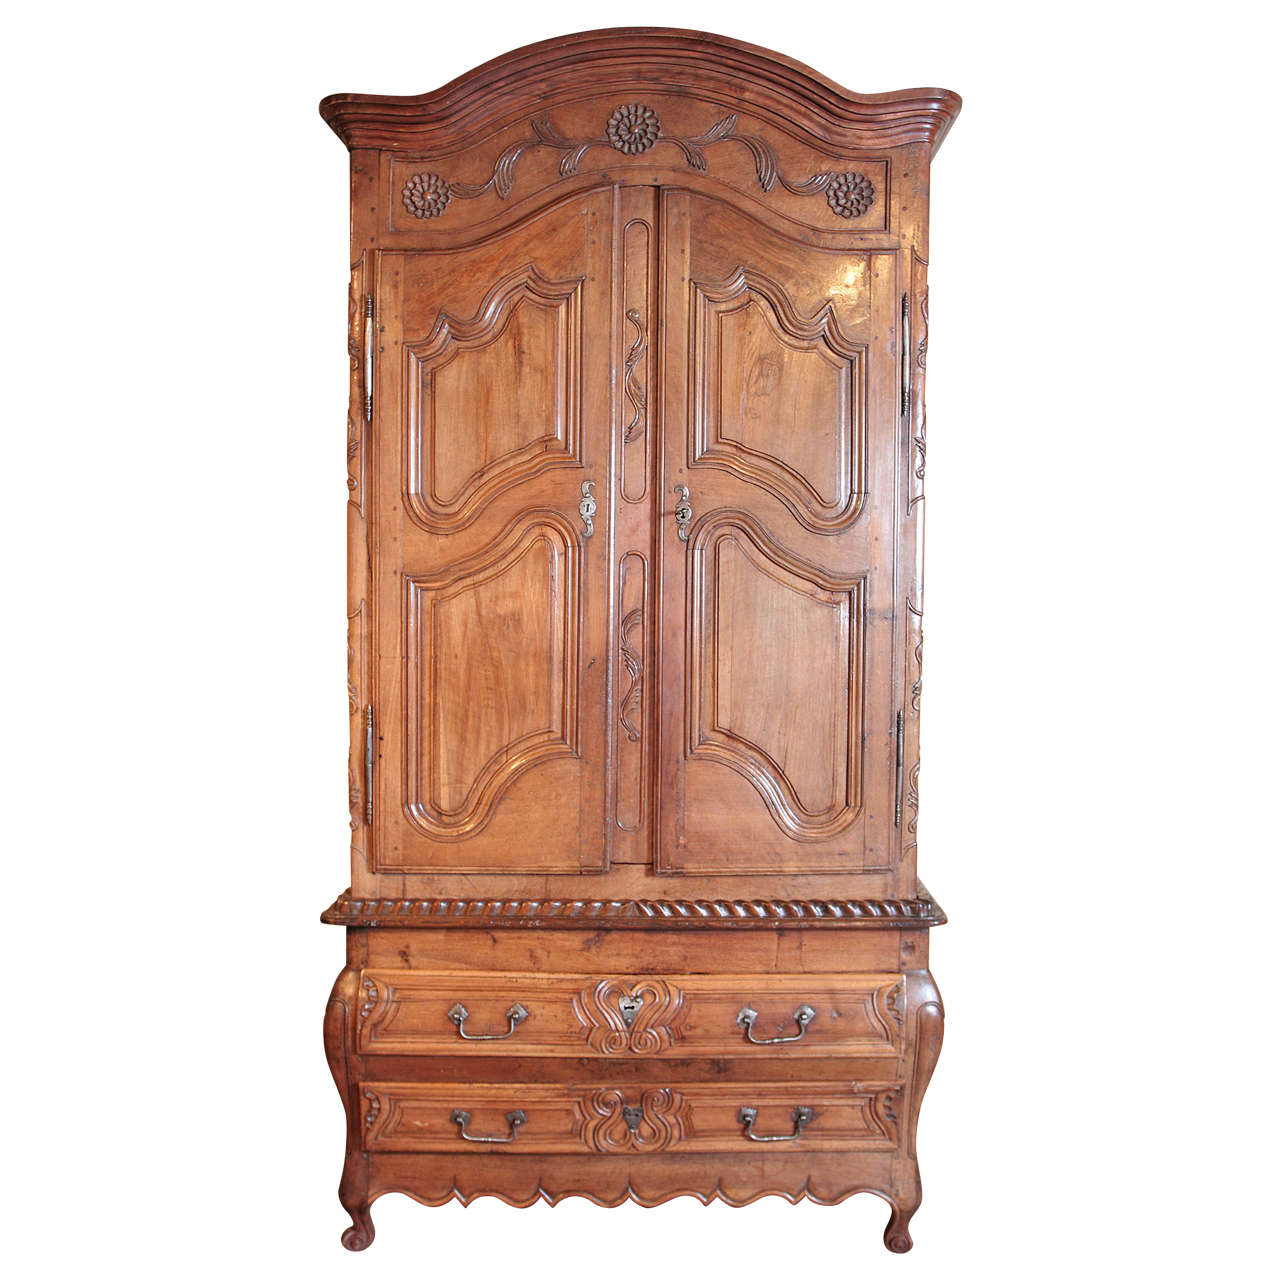 18th century french louis xv carved walnut armoire pantalonniere from provence for sale